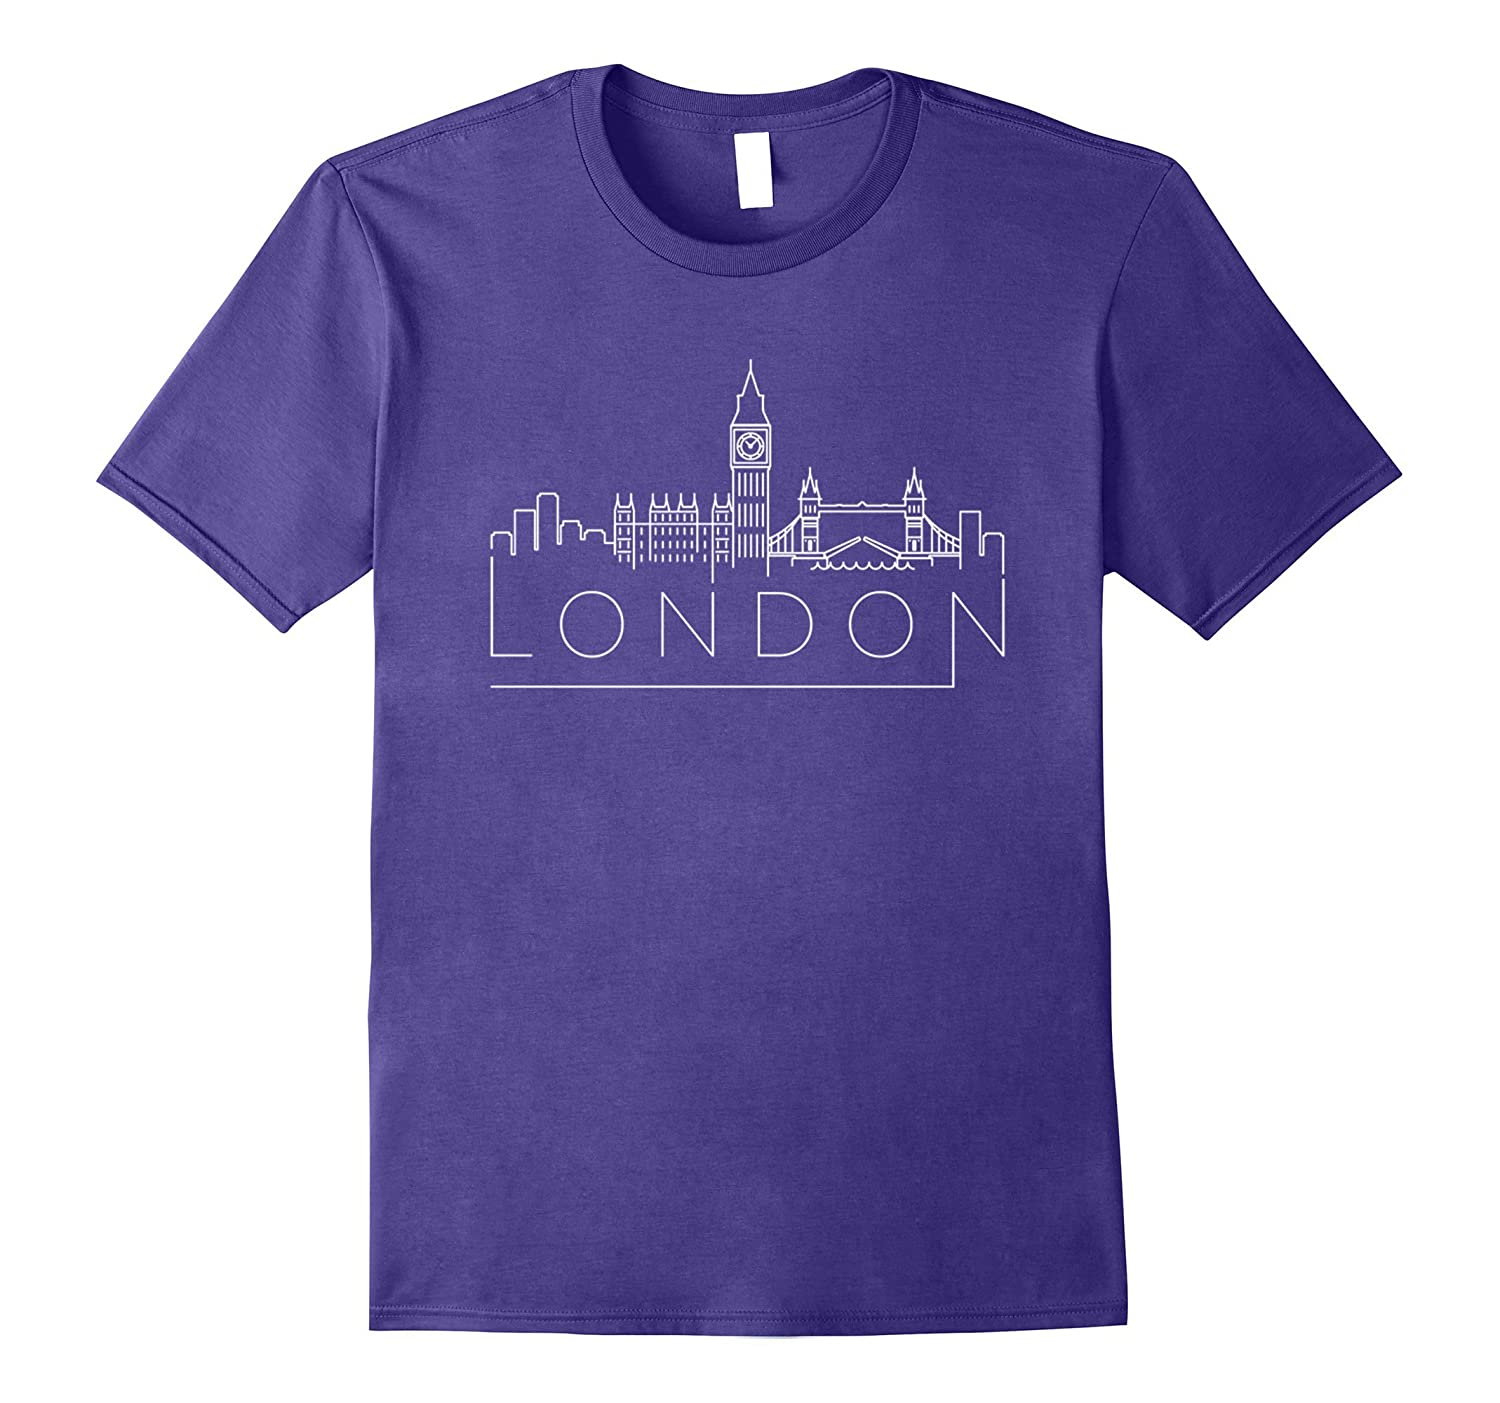 London T-Shirt - UK British BREXIT Souvenir T Shirts-Vaci